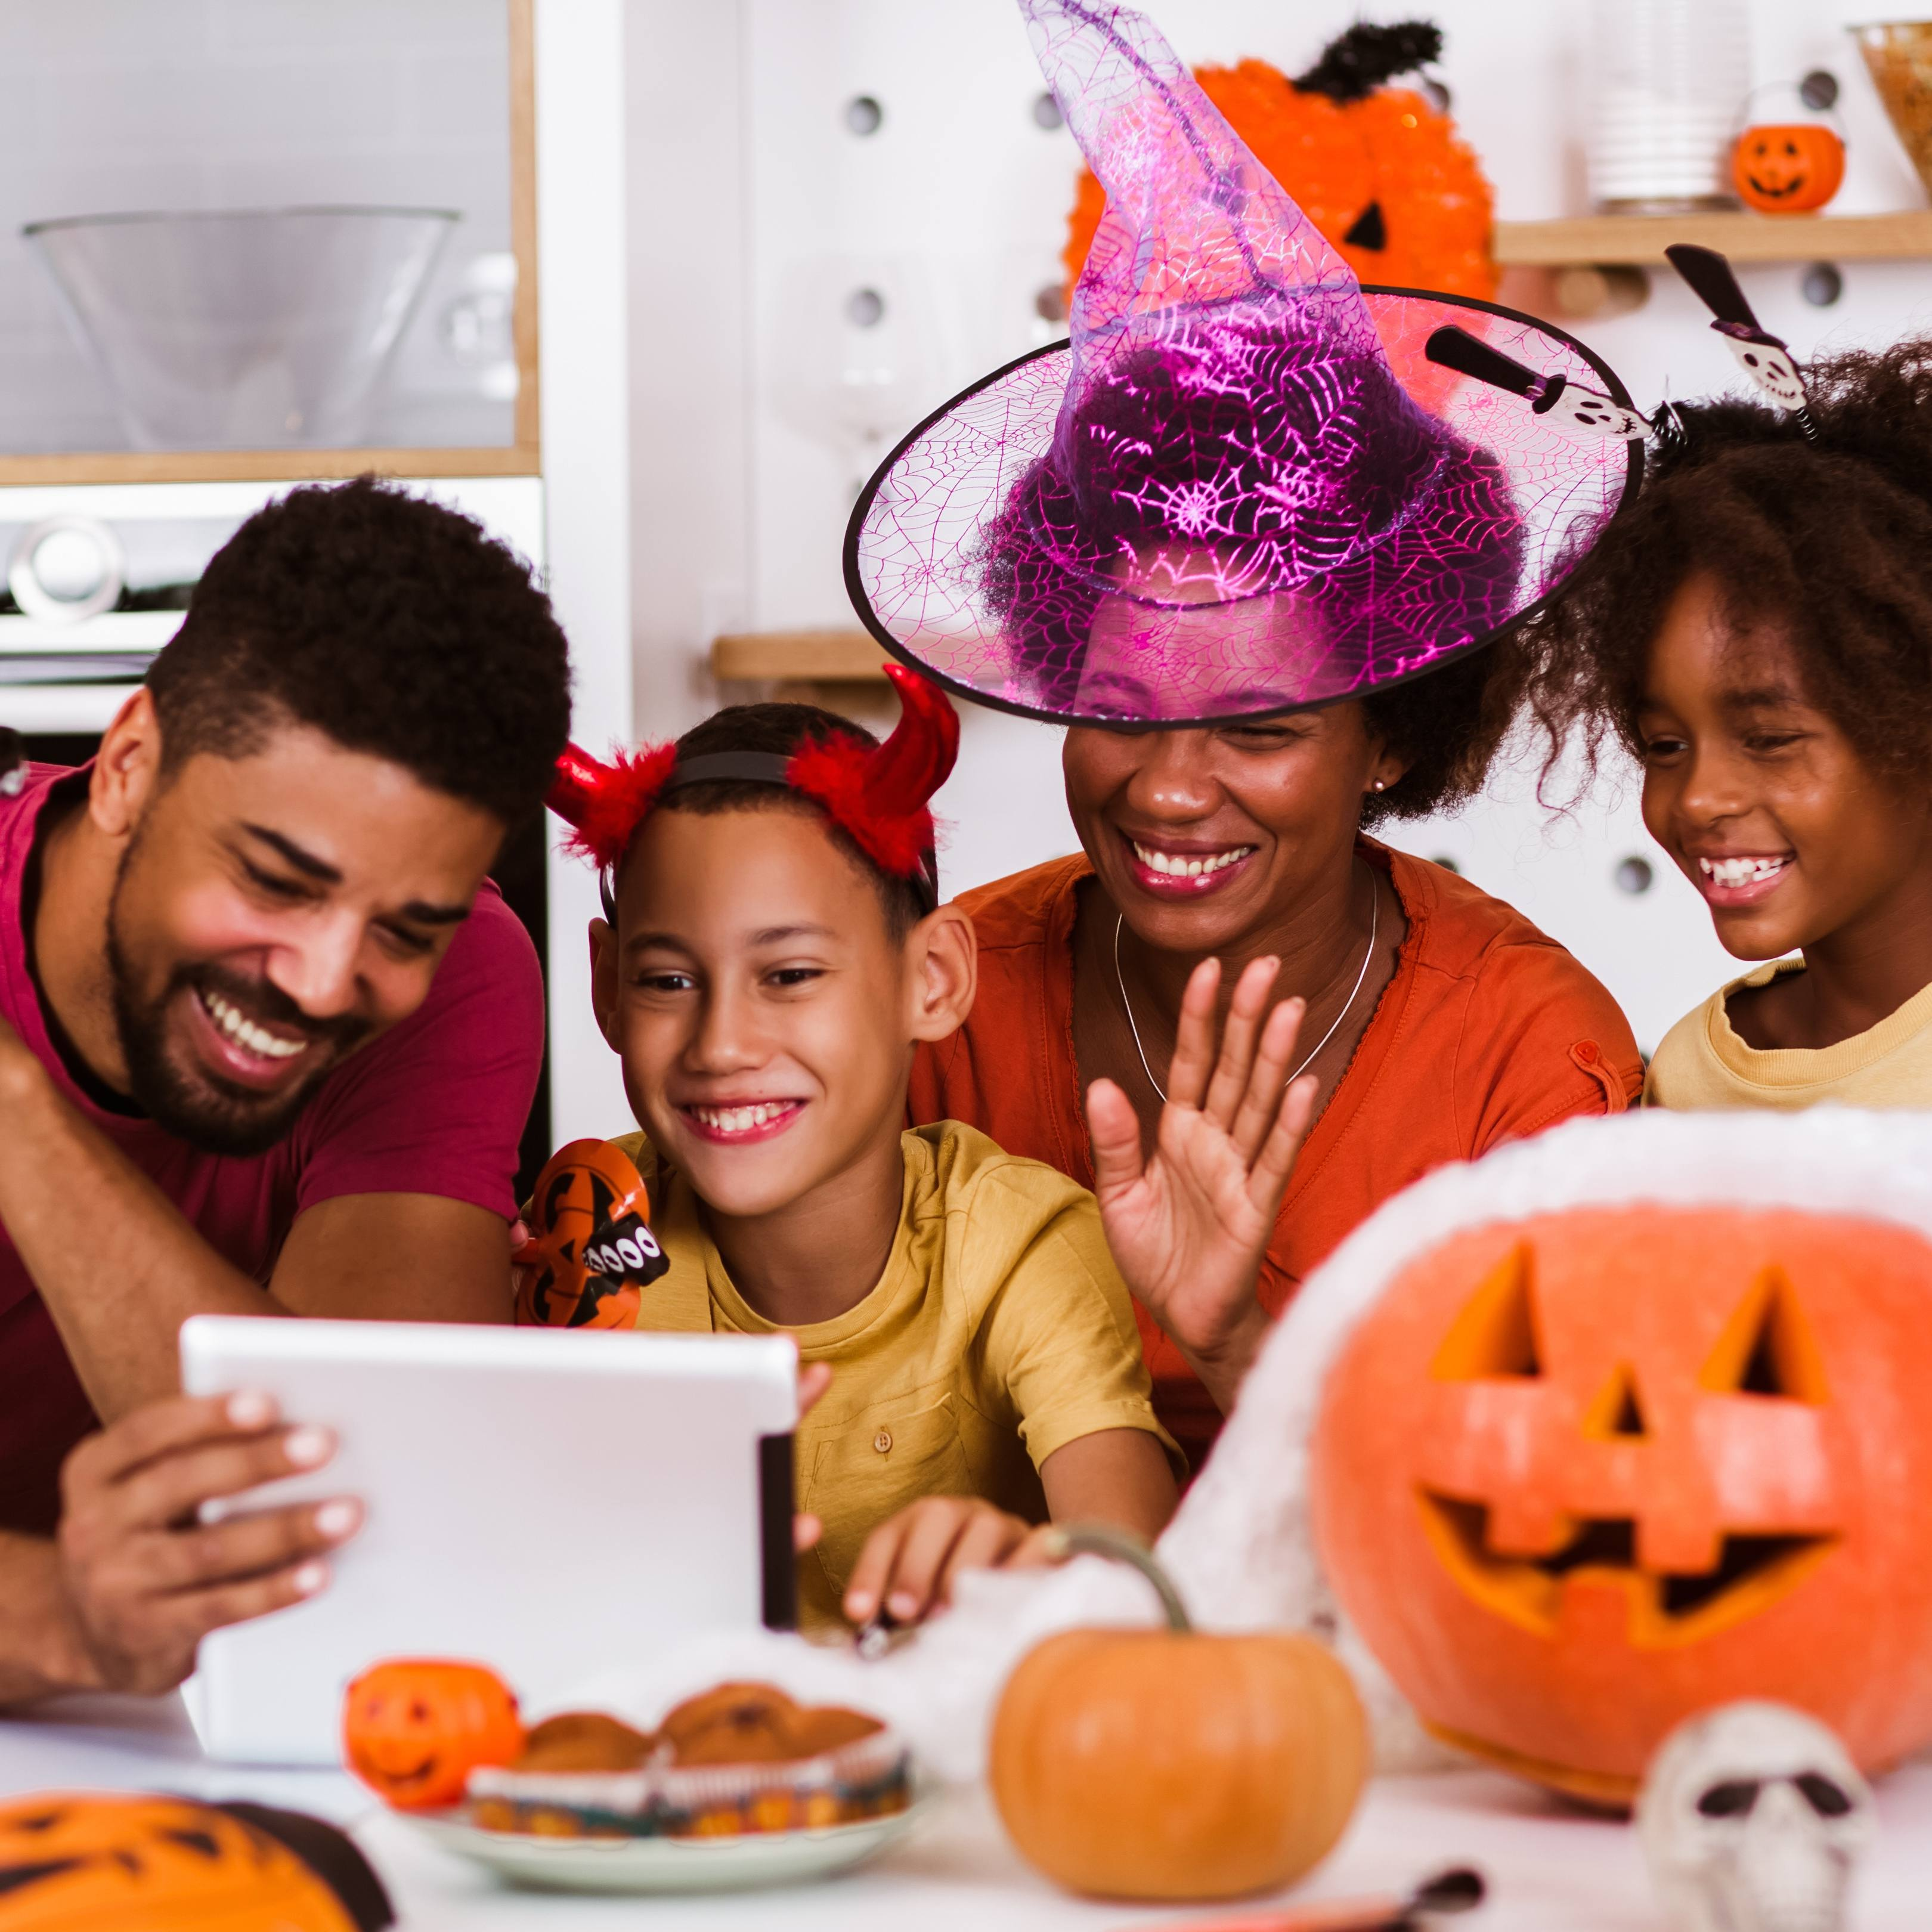 a Black man and woman, perhaps parents, with two children laughing and smiling while having fun with Halloween decorating activities